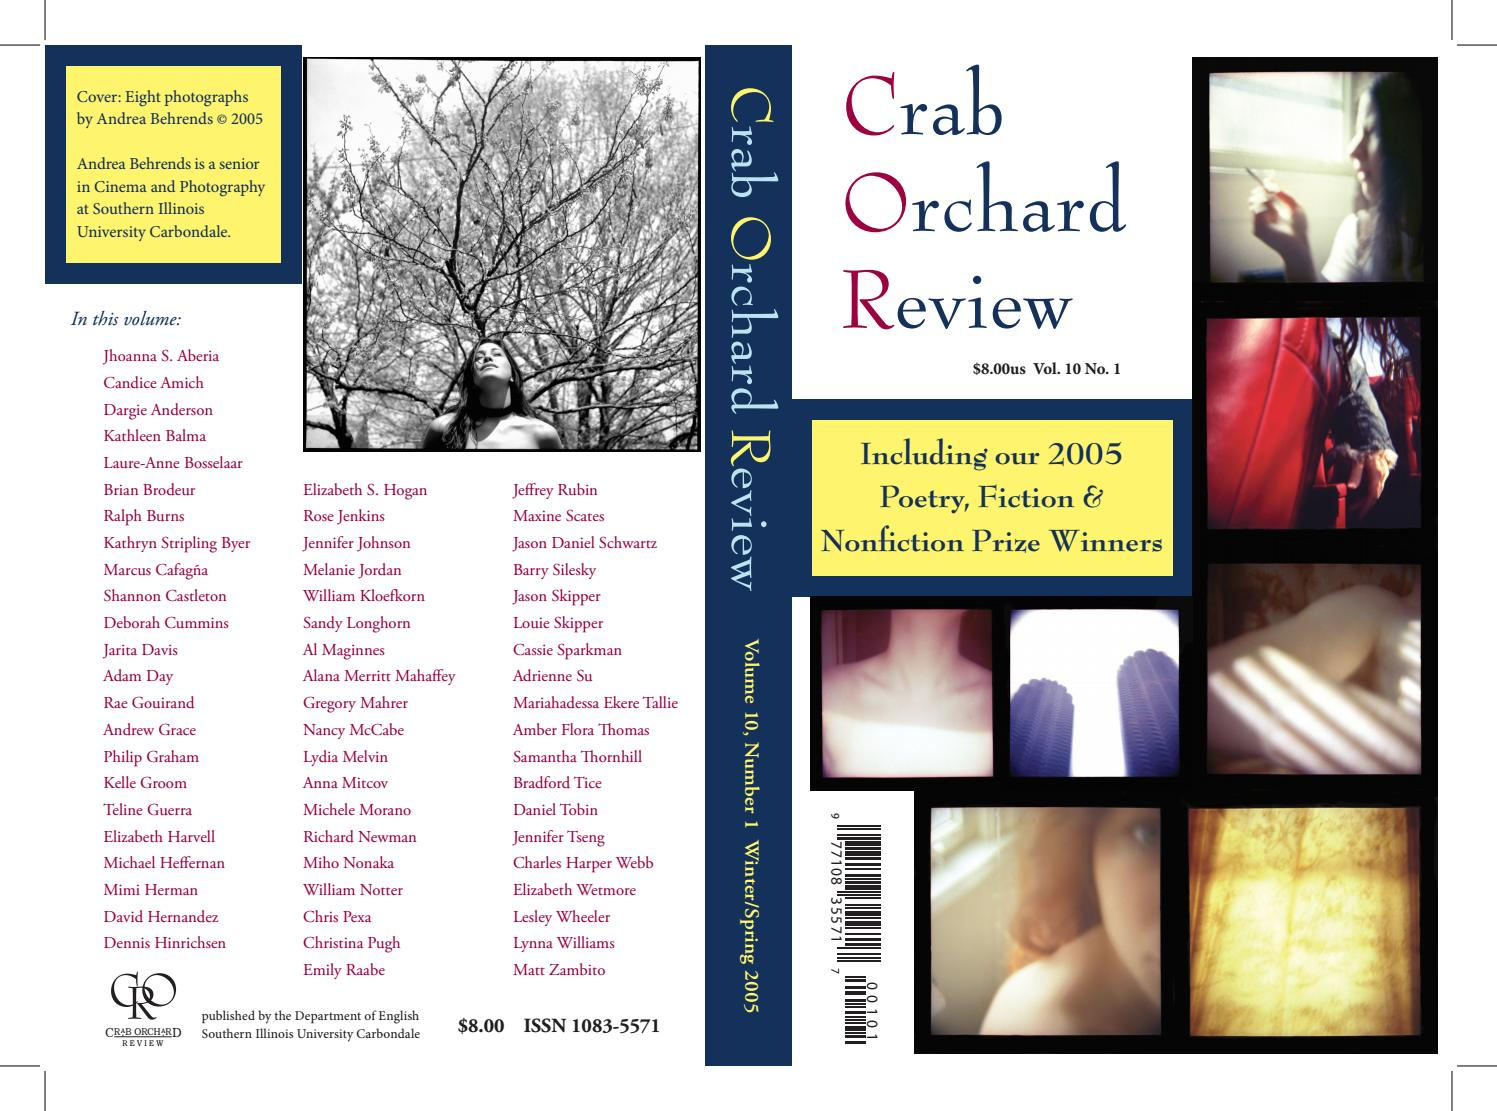 18a692cad Crab Orchard Review Vol 10 No 1 W/S 2005 by Crab Orchard Review - issuu